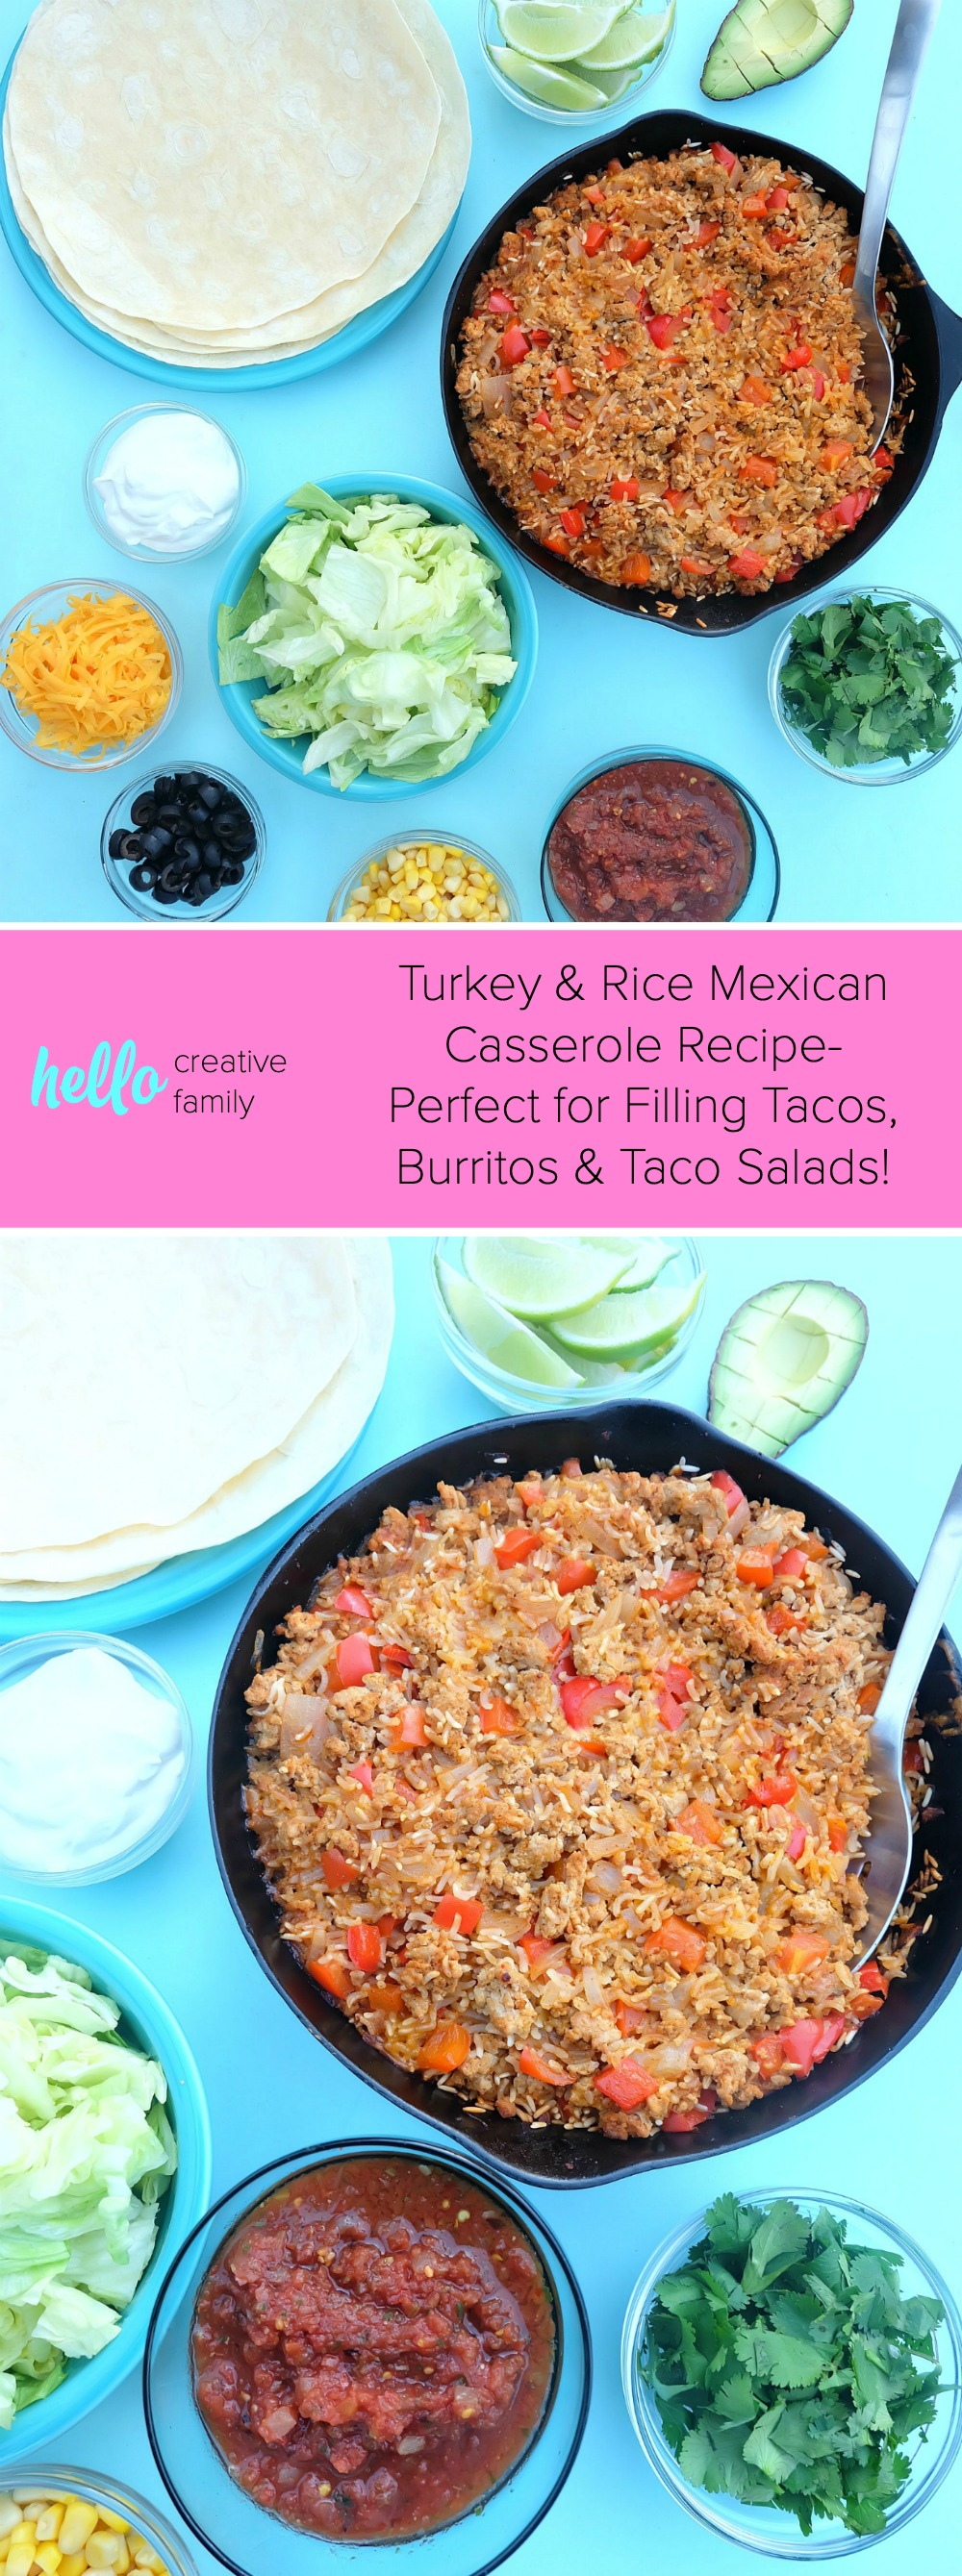 This quick and easy family friendly ground turkey and rice Mexican casserole recipe is a healthy one pan meal that takes 10 minutes to prep! Perfect for feeding a crowd or for multiple meals. Use it as a filling for tacos, burritos or as a topping for taco salad! #MakeItWithTurkey #Recipe #MexicanFood #Turkey #OnePan #sponsored